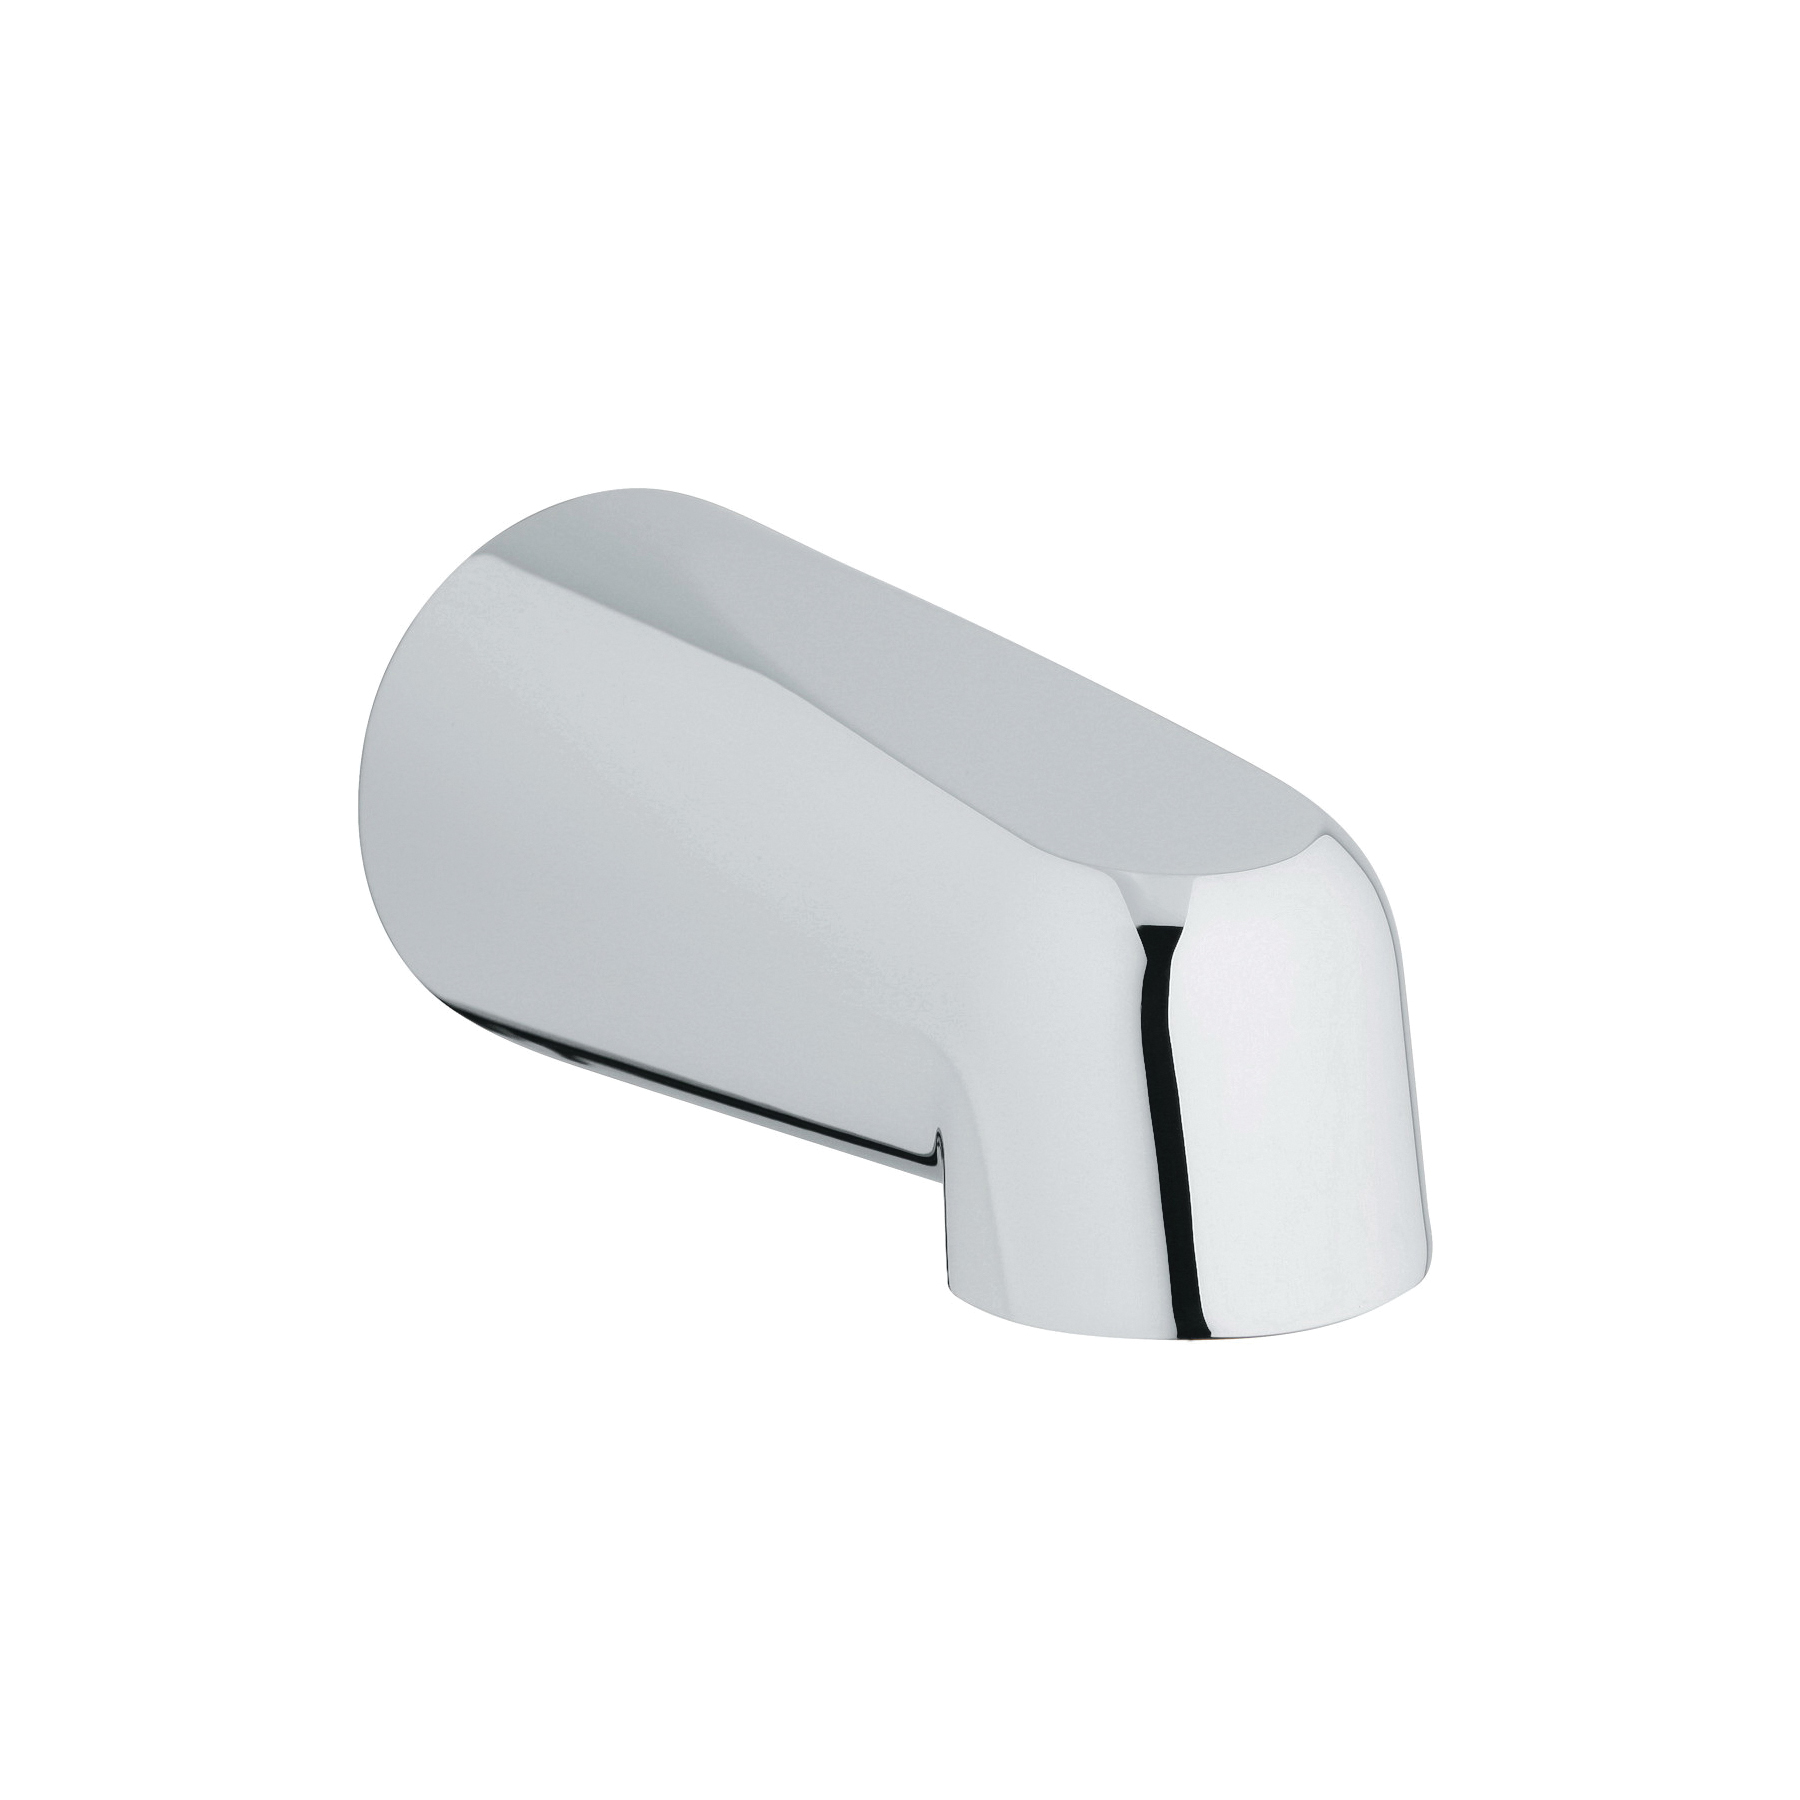 GROHE 13551000 Wall Mounted Tub Spout, 5 in Spout Reach, StarLight® Chrome, Import